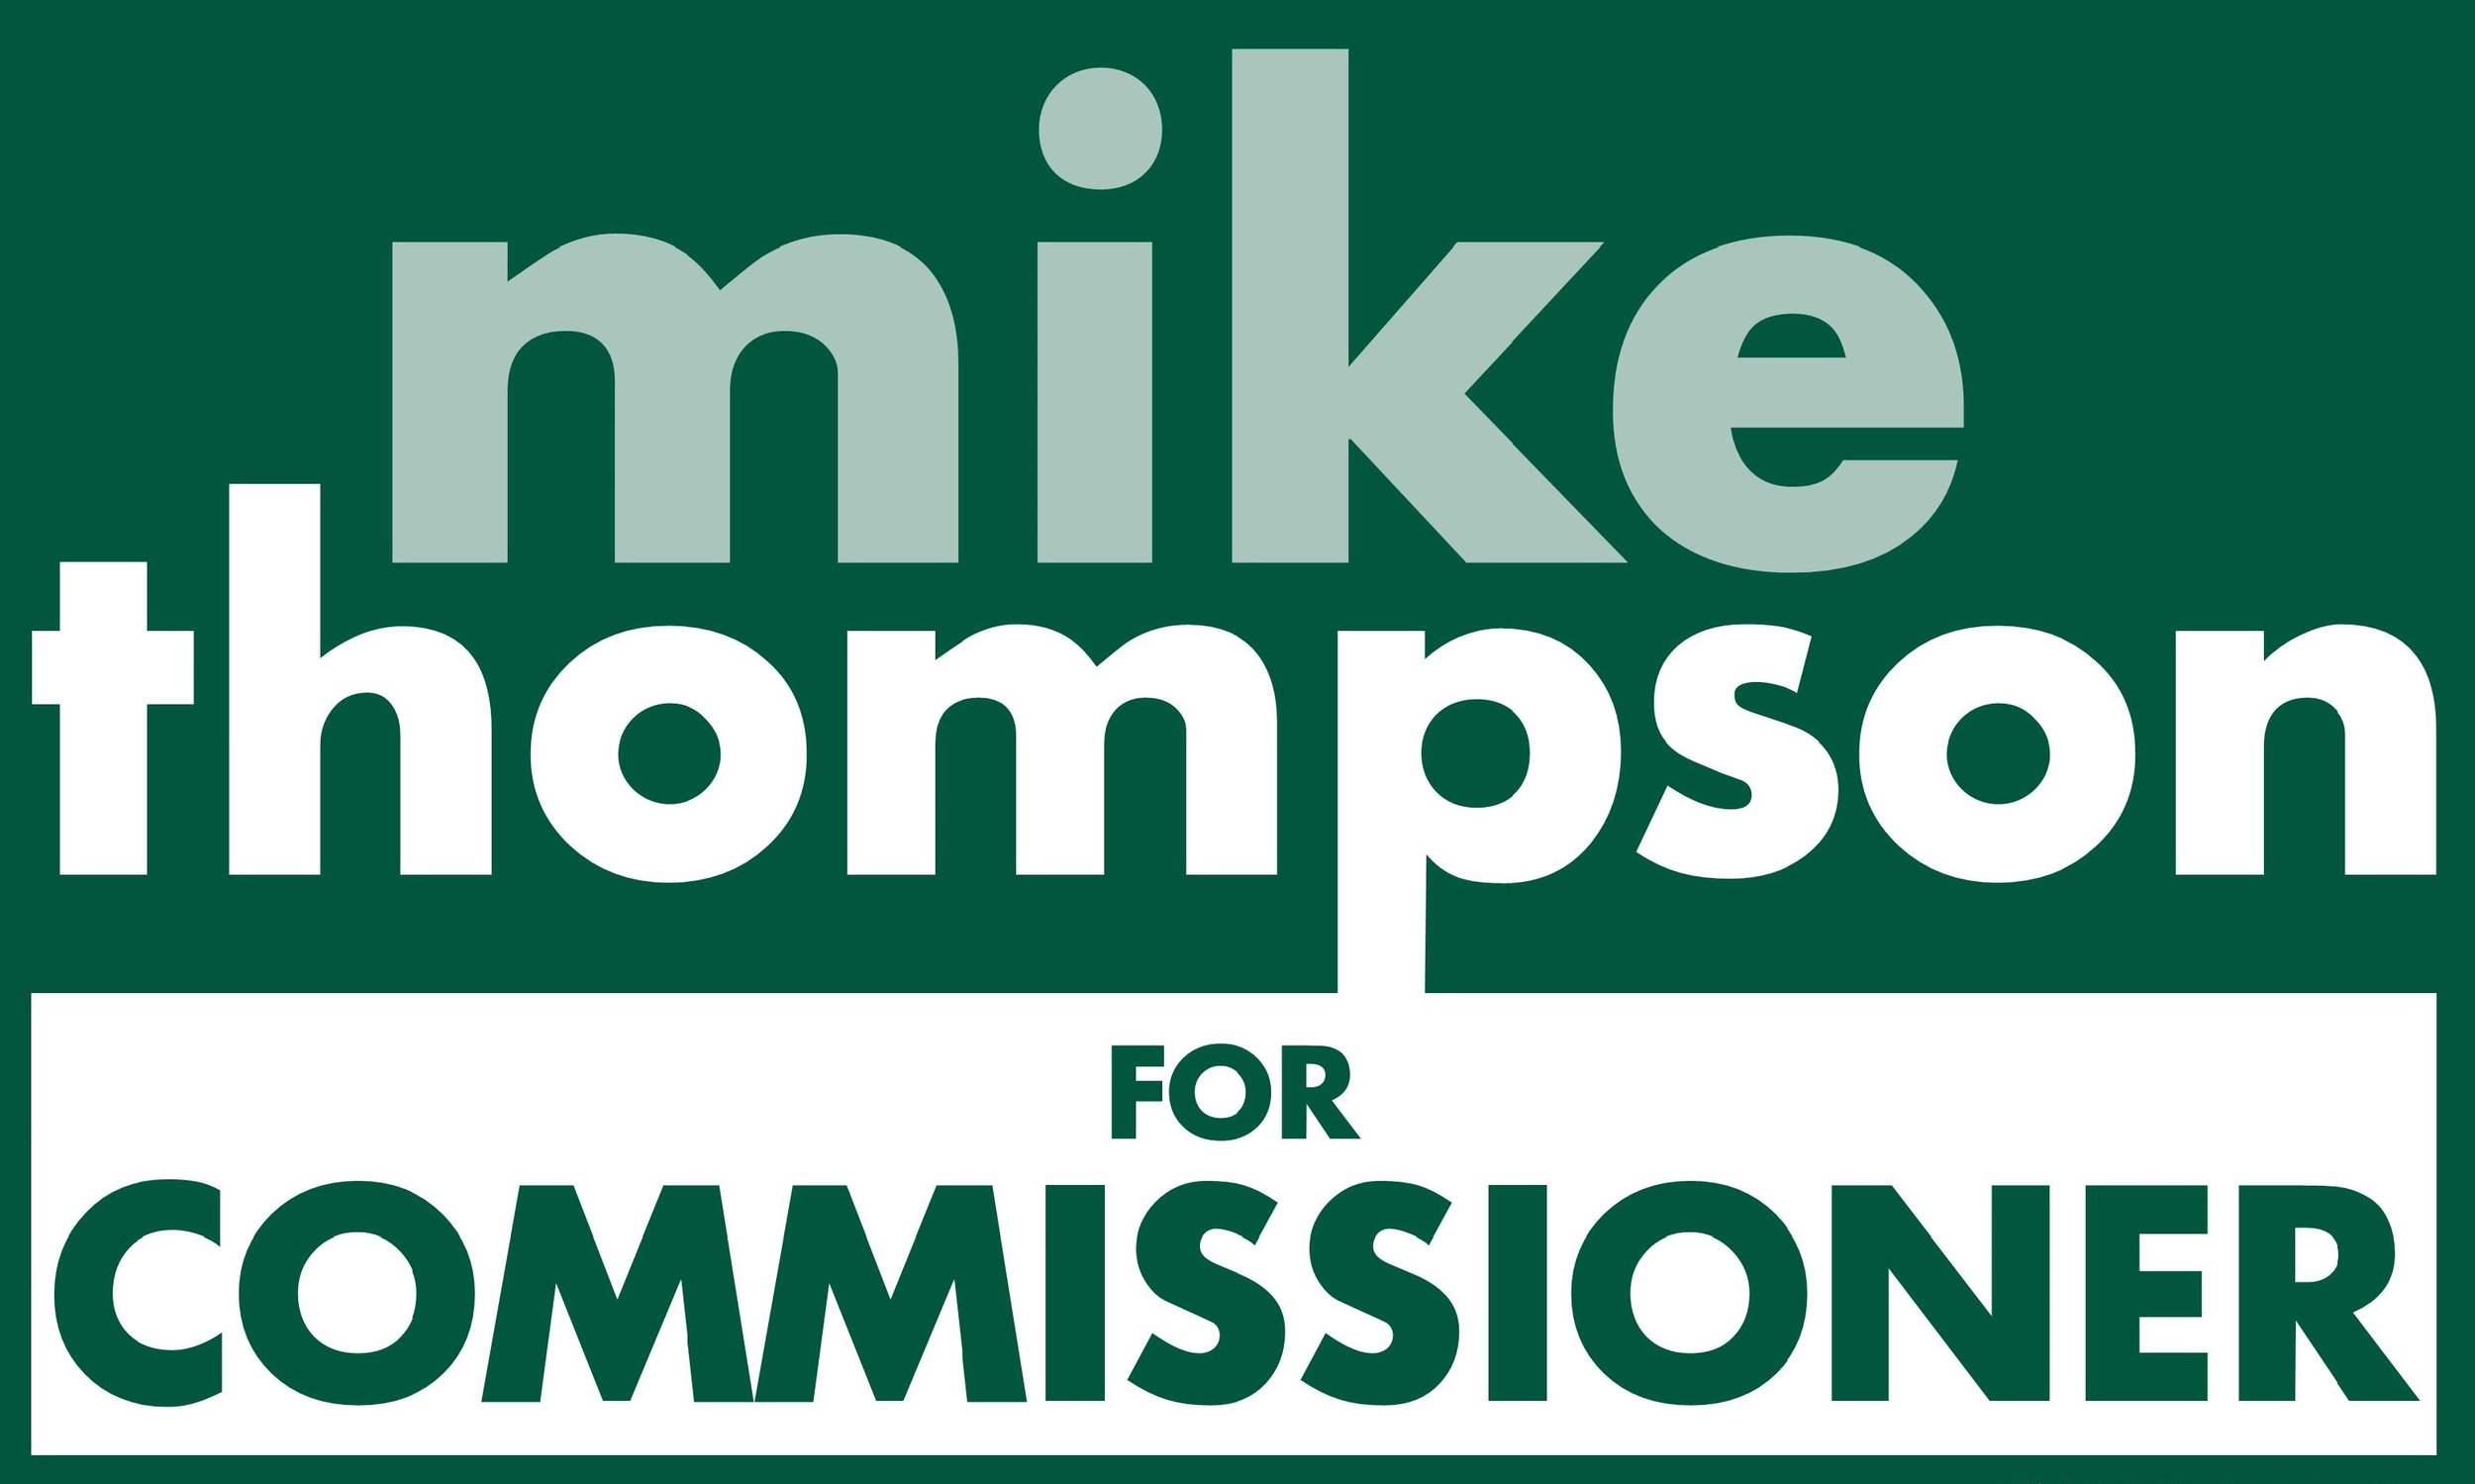 Mike_Thompson_lawn_sign_1 cropped.jpg